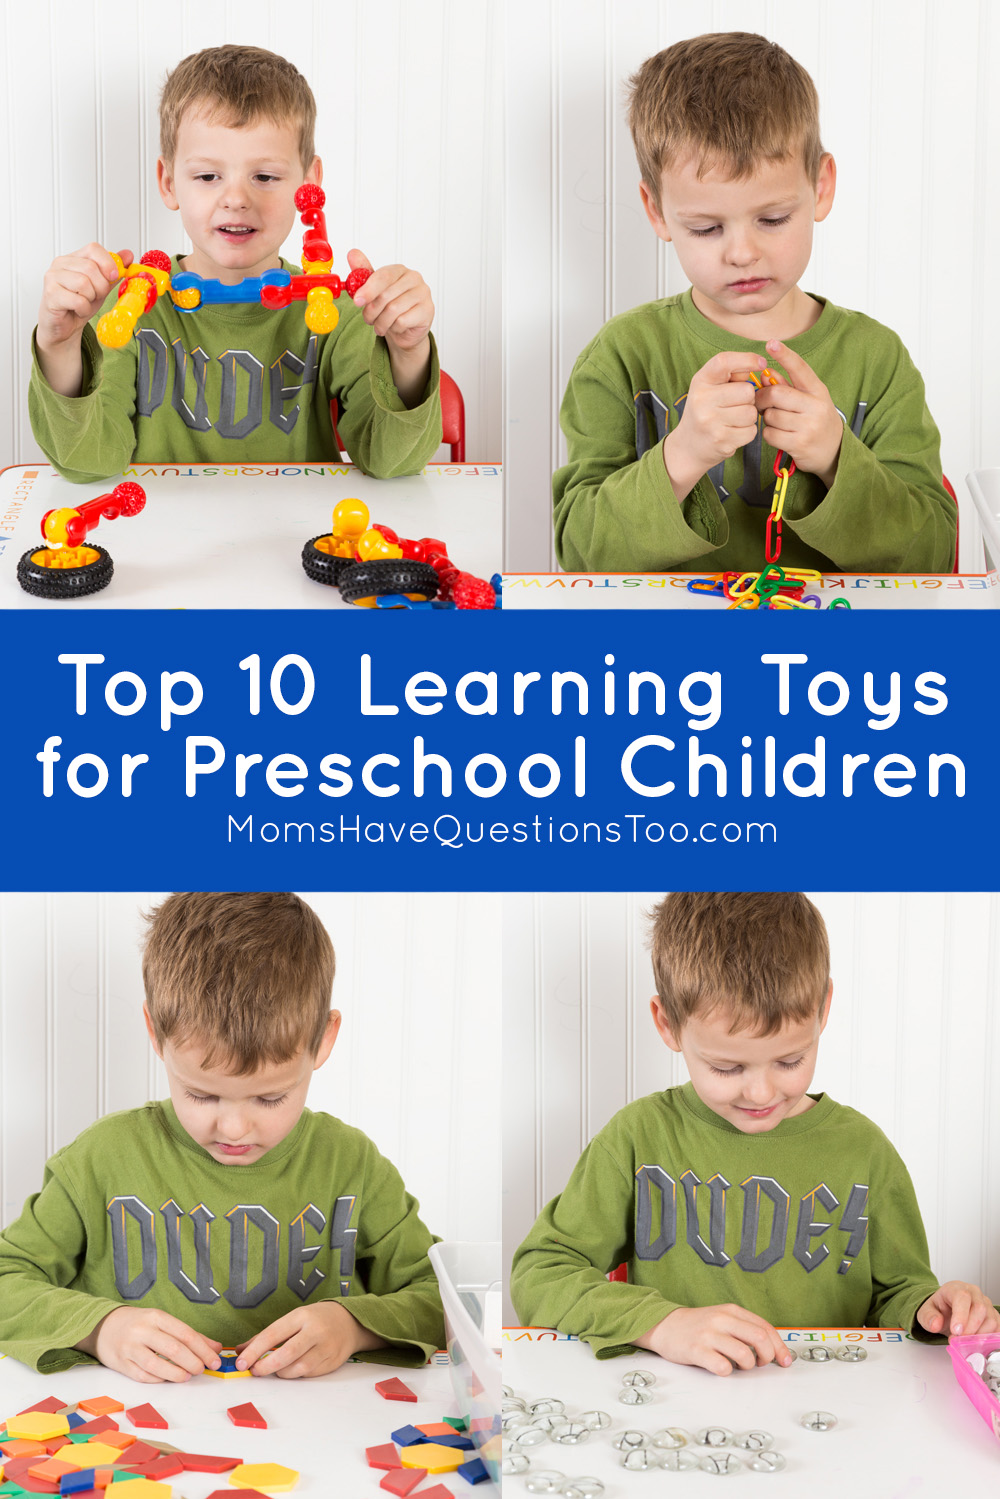 Great Toys For Preschoolers : Top learning toys for preschoolers